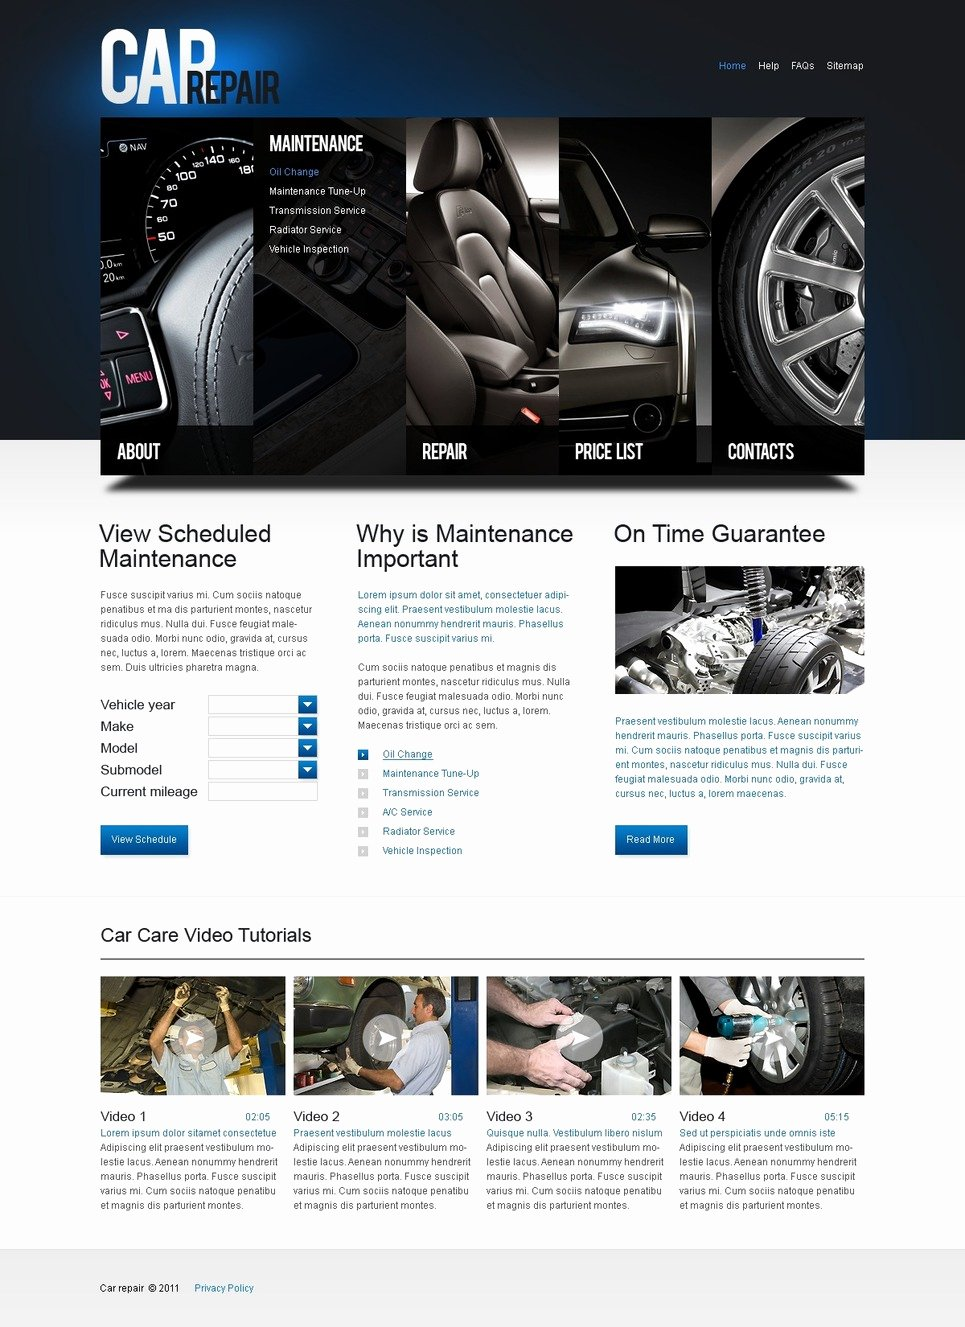 Auto Repair Website Template Awesome Car Repair Website Template